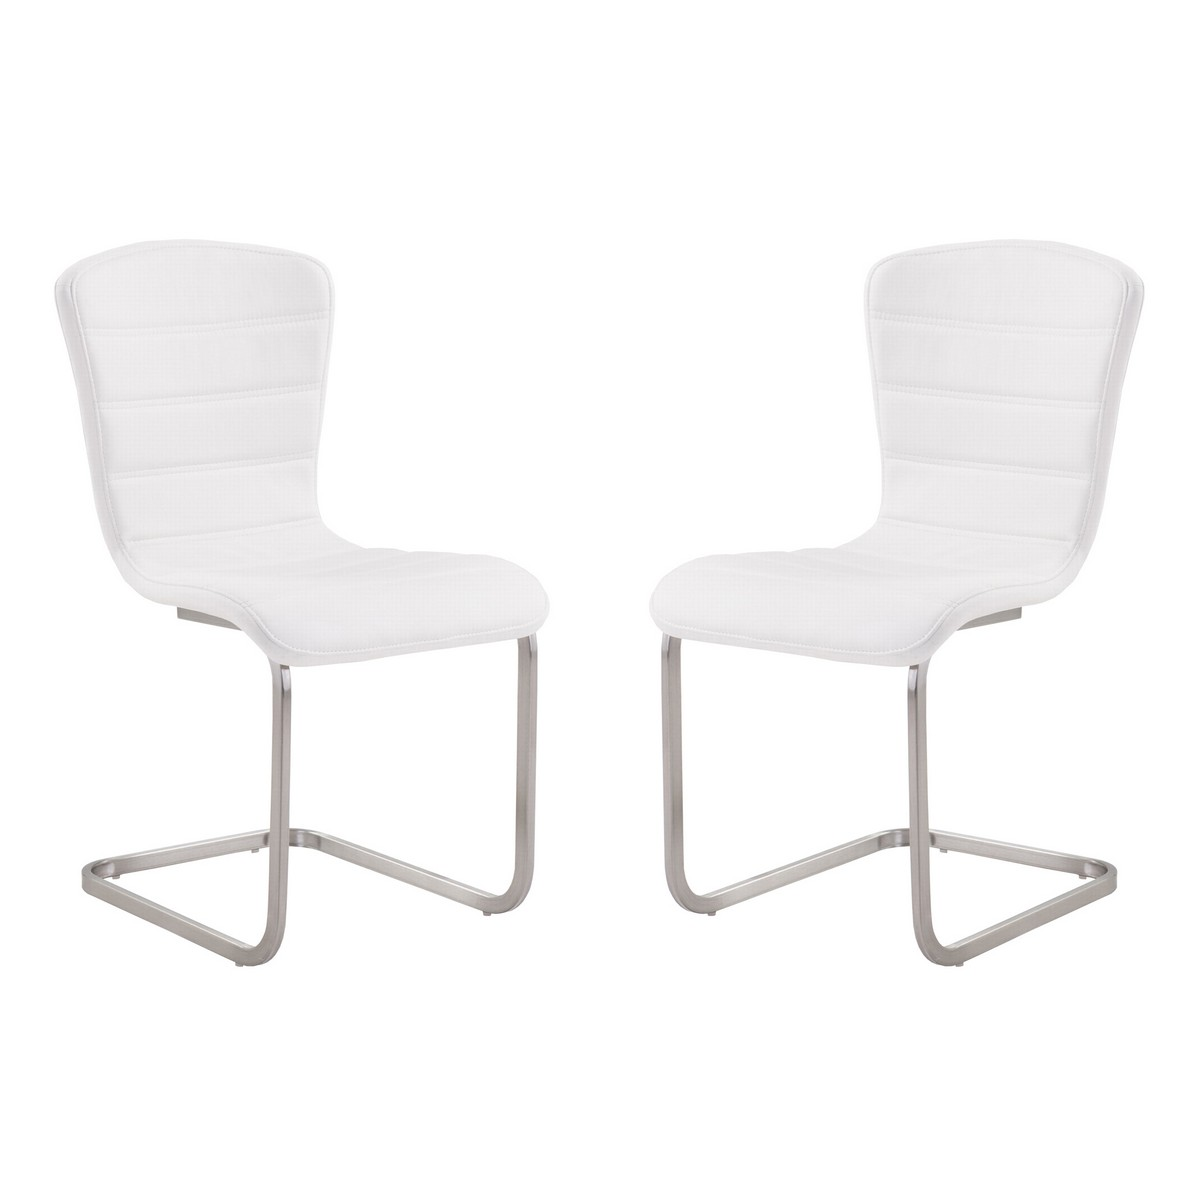 Armen Living Cameo Modern Side Chair In White and Stainless Steel